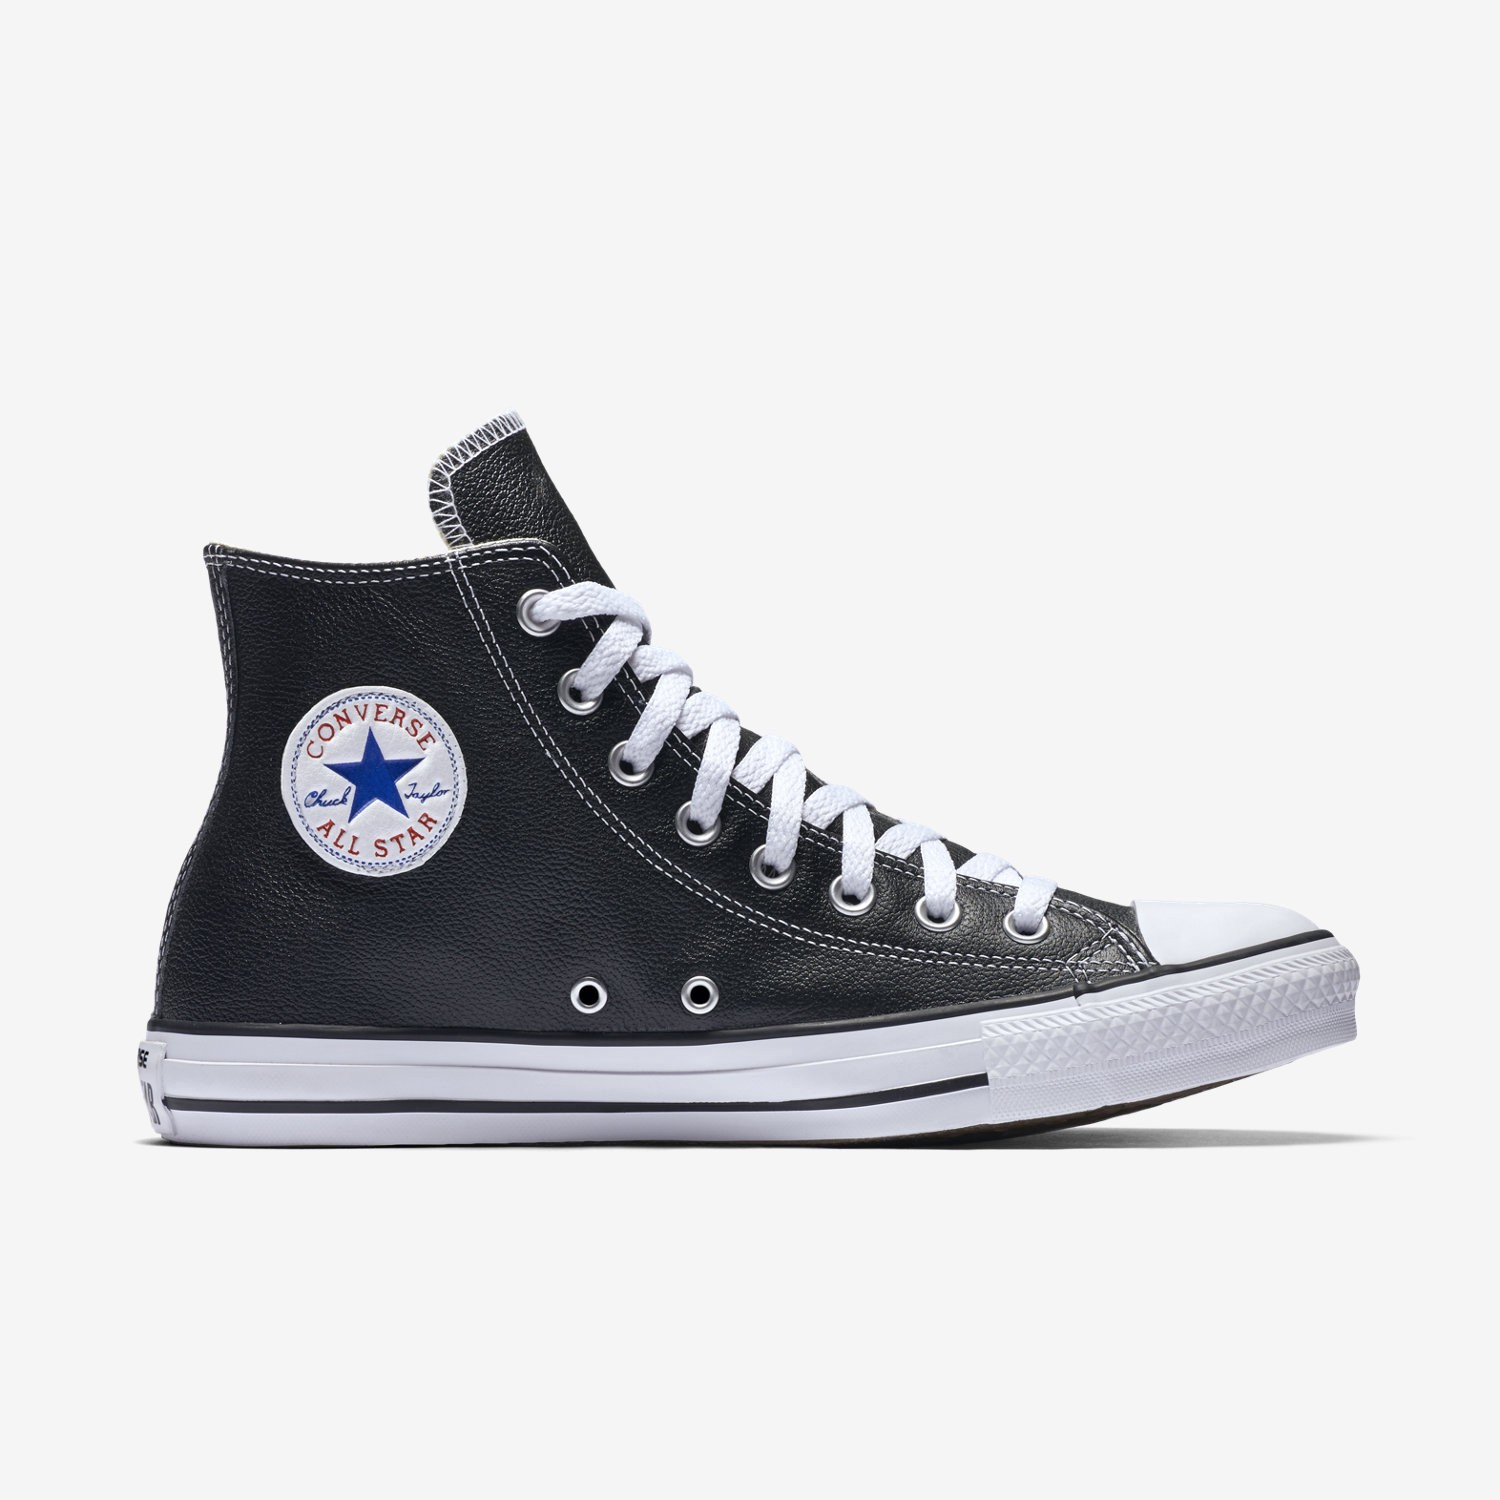 eb032746fc2d8e Everyone knows what Chuck Taylors look like. They are arguably the most  classic sneaker silhouette in history